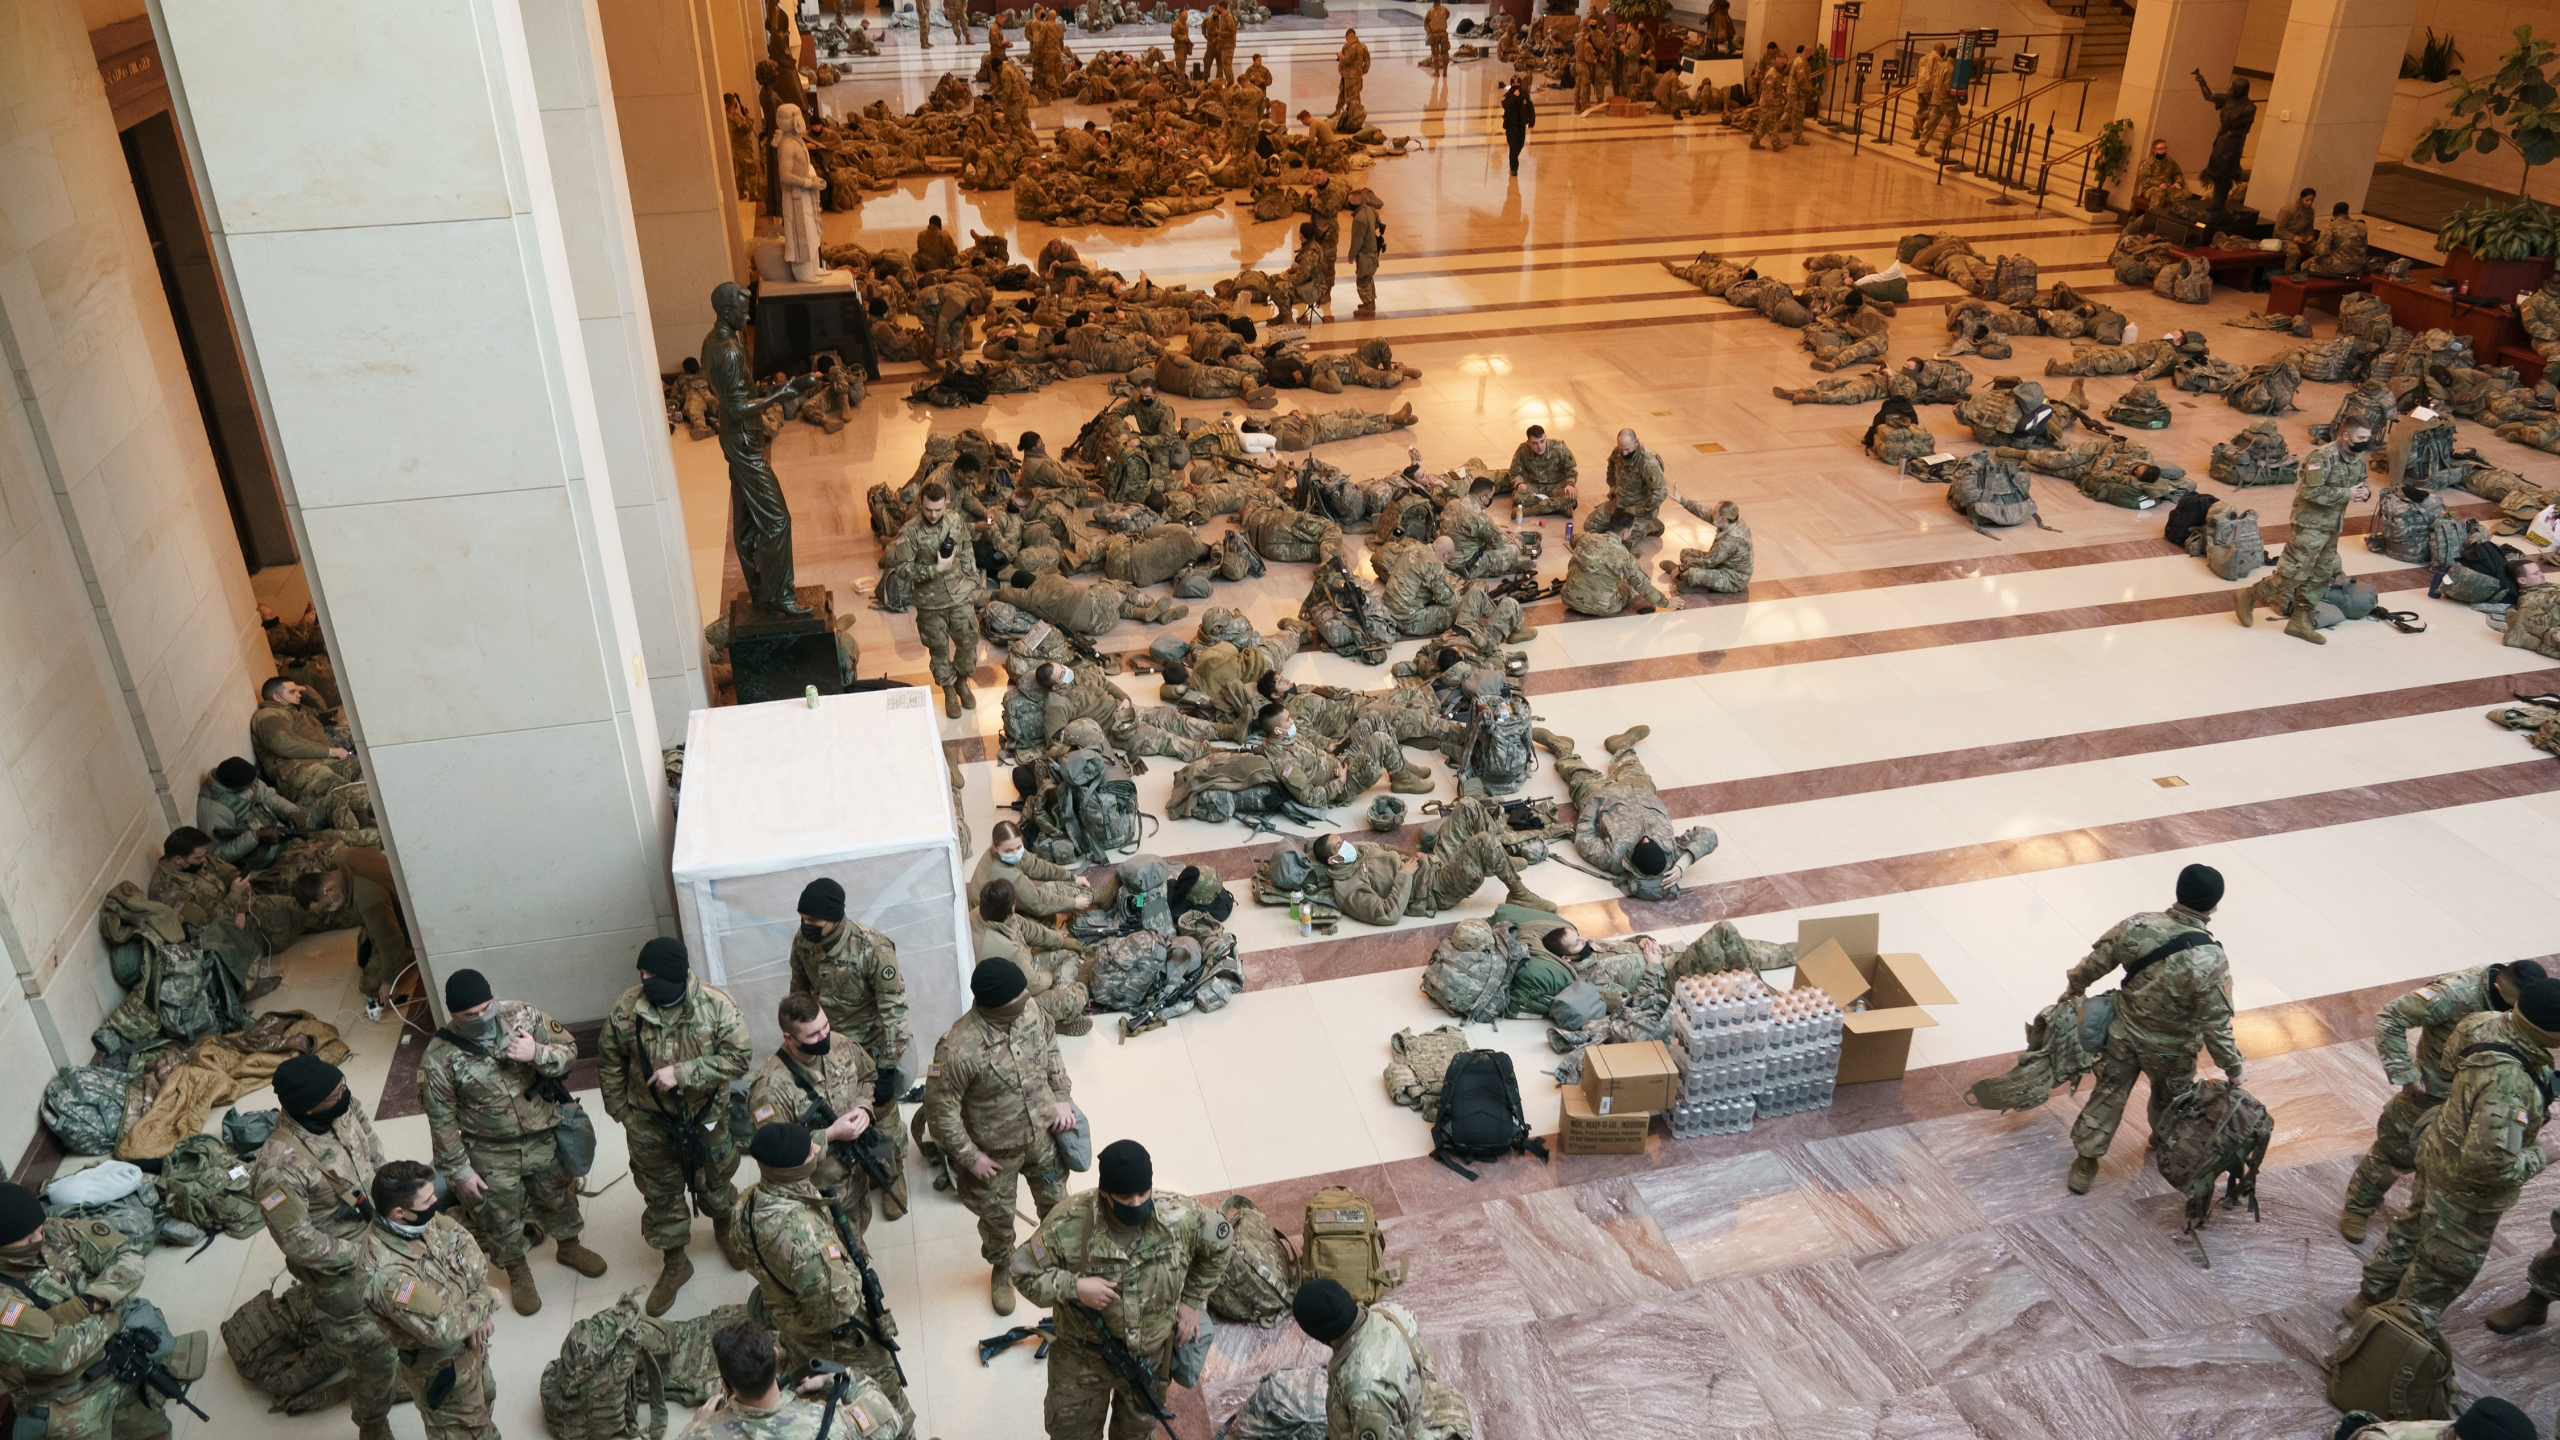 National Guard troops photographed sleeping on marble floors of Capitol  ahead of impeachment vote | WDTN.com